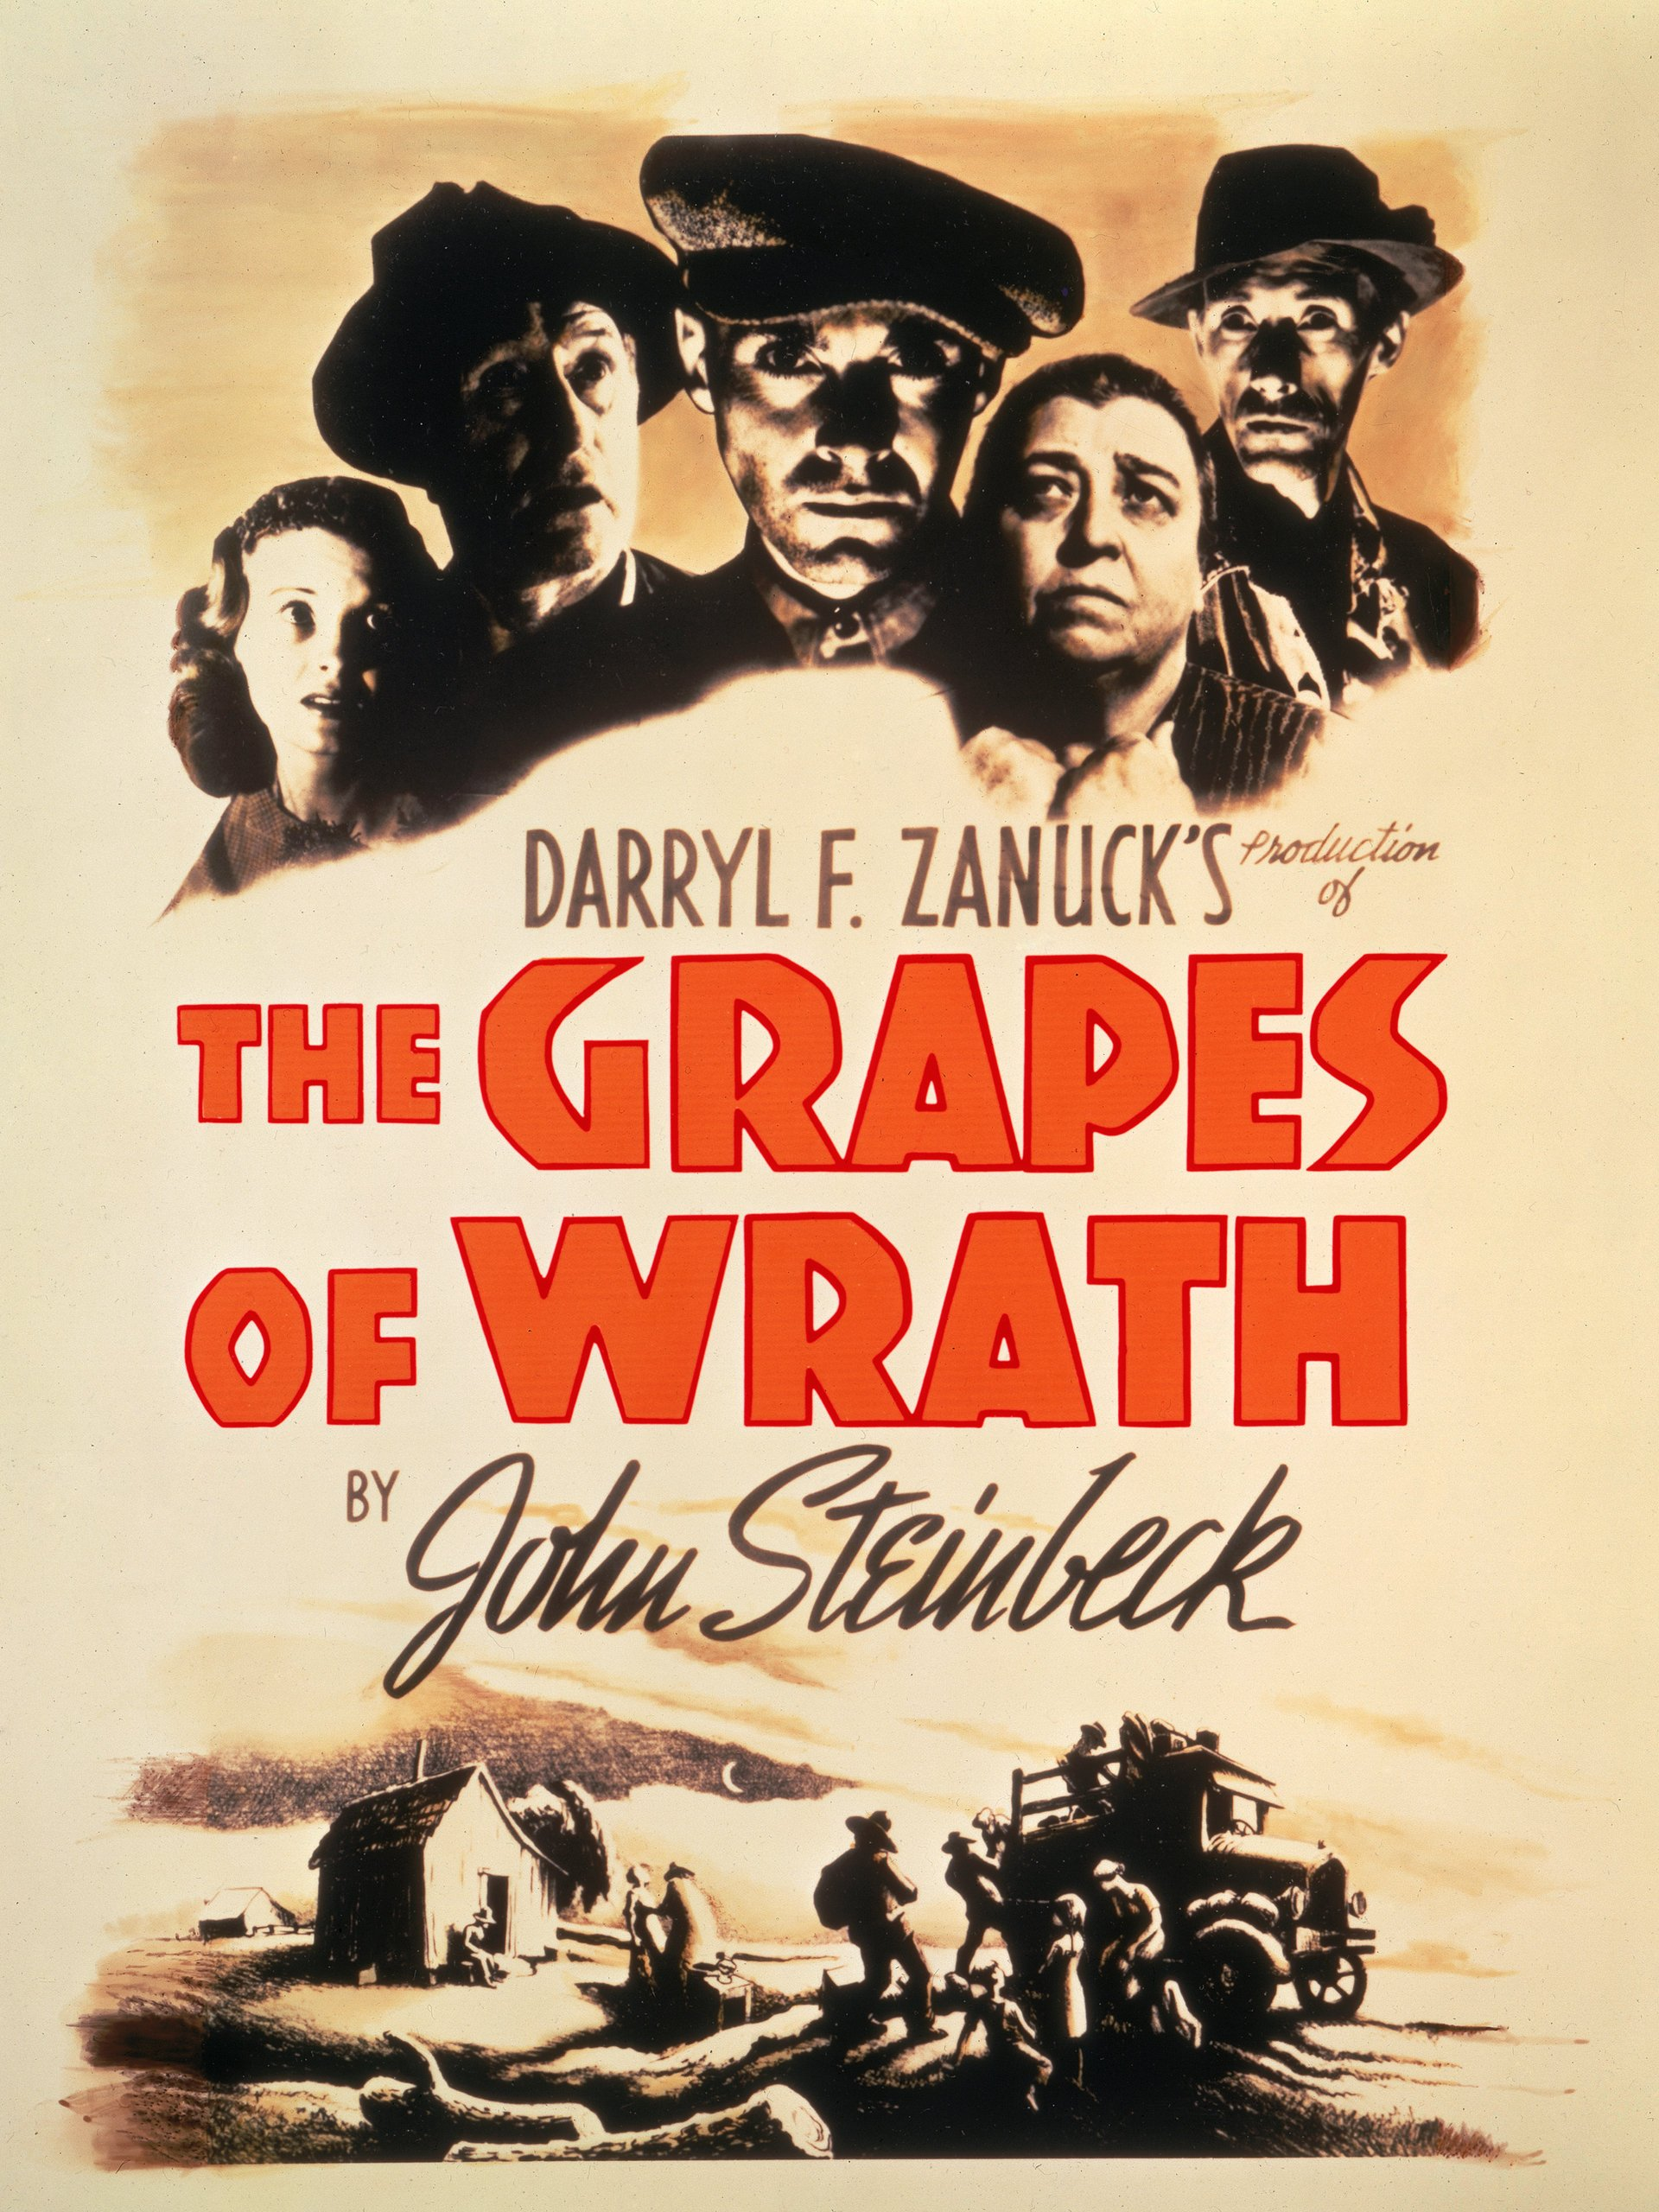 Amazon.com: Watch The Grapes Of Wrath | Prime Video